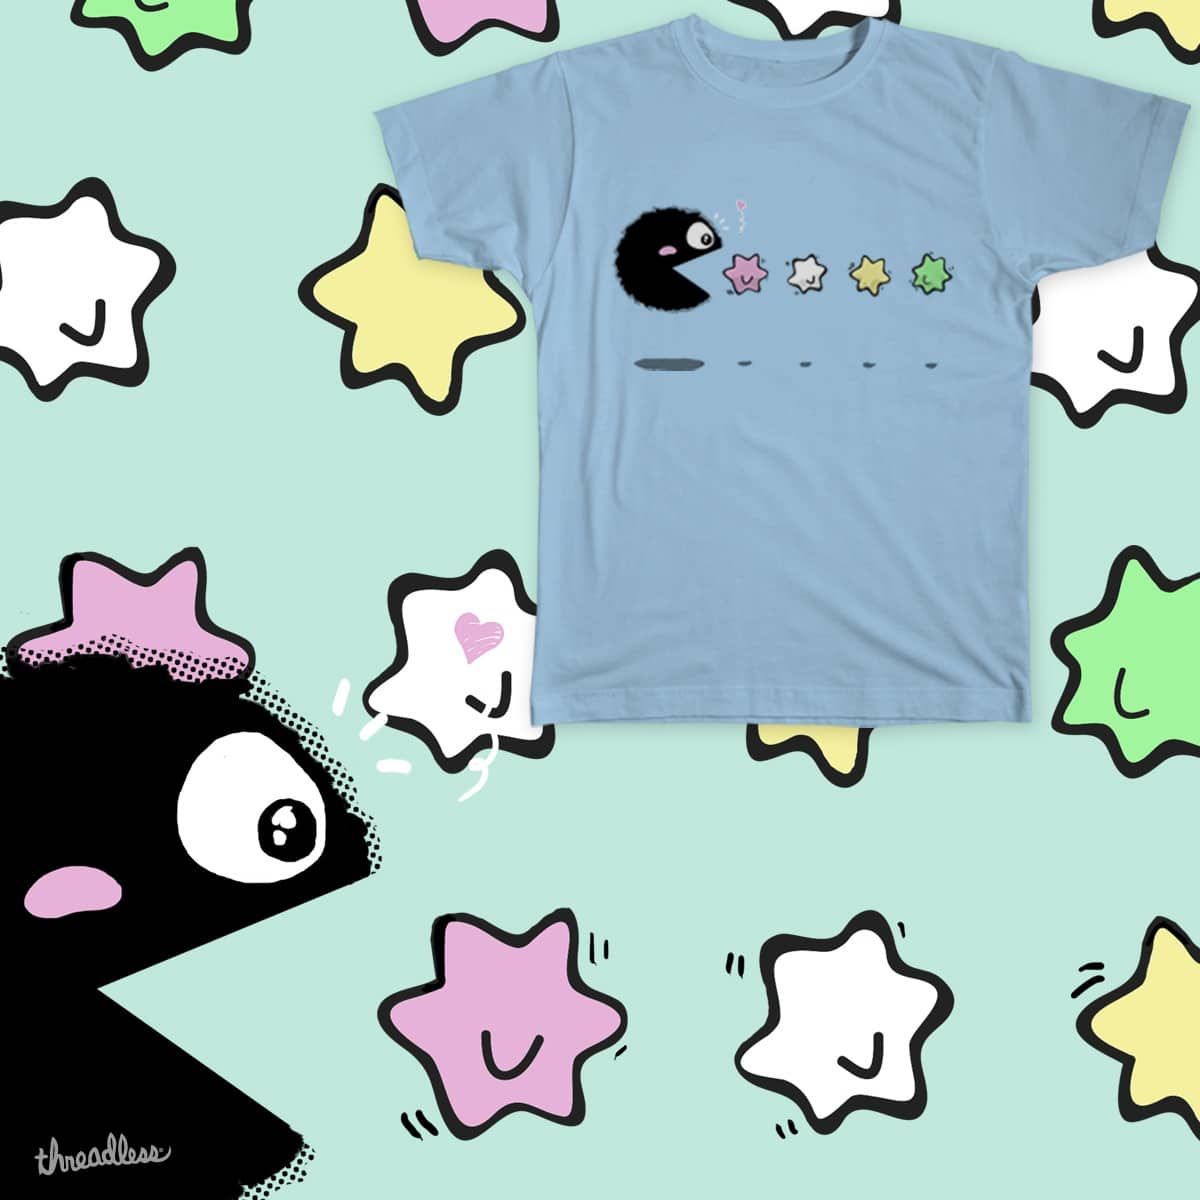 Soot Pacman by PichinsCreations on Threadless